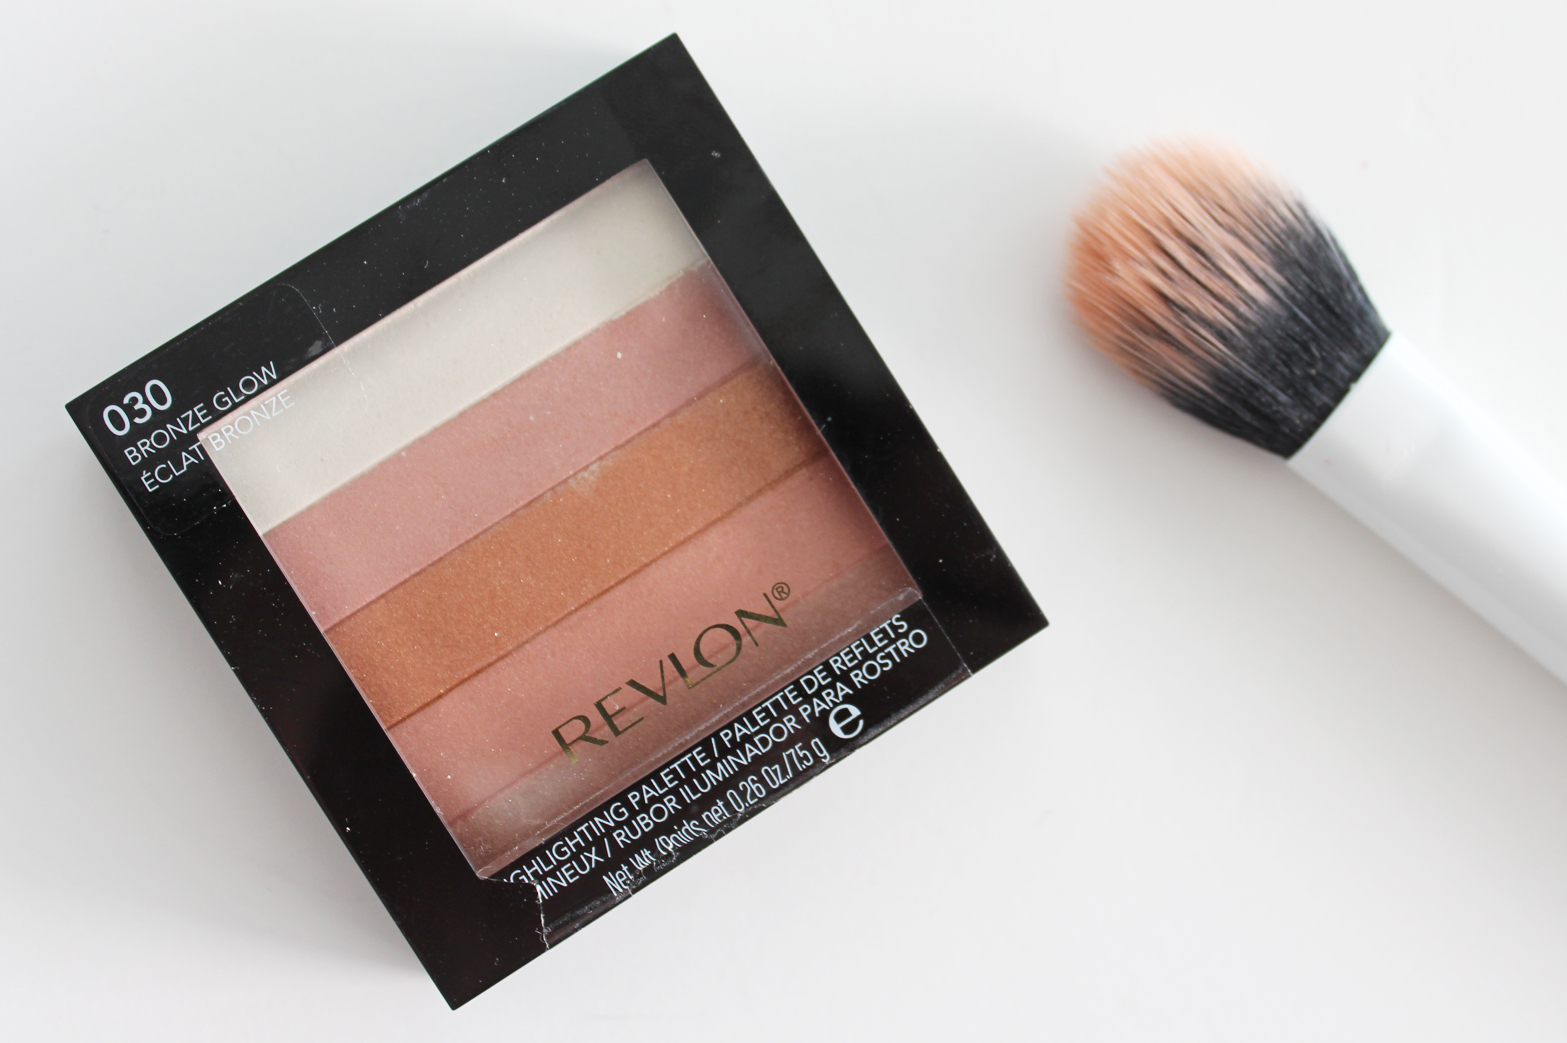 REVLON | Highlighting Palette in 030 Bronze Glow - Review + Swatches - CassandraMyee